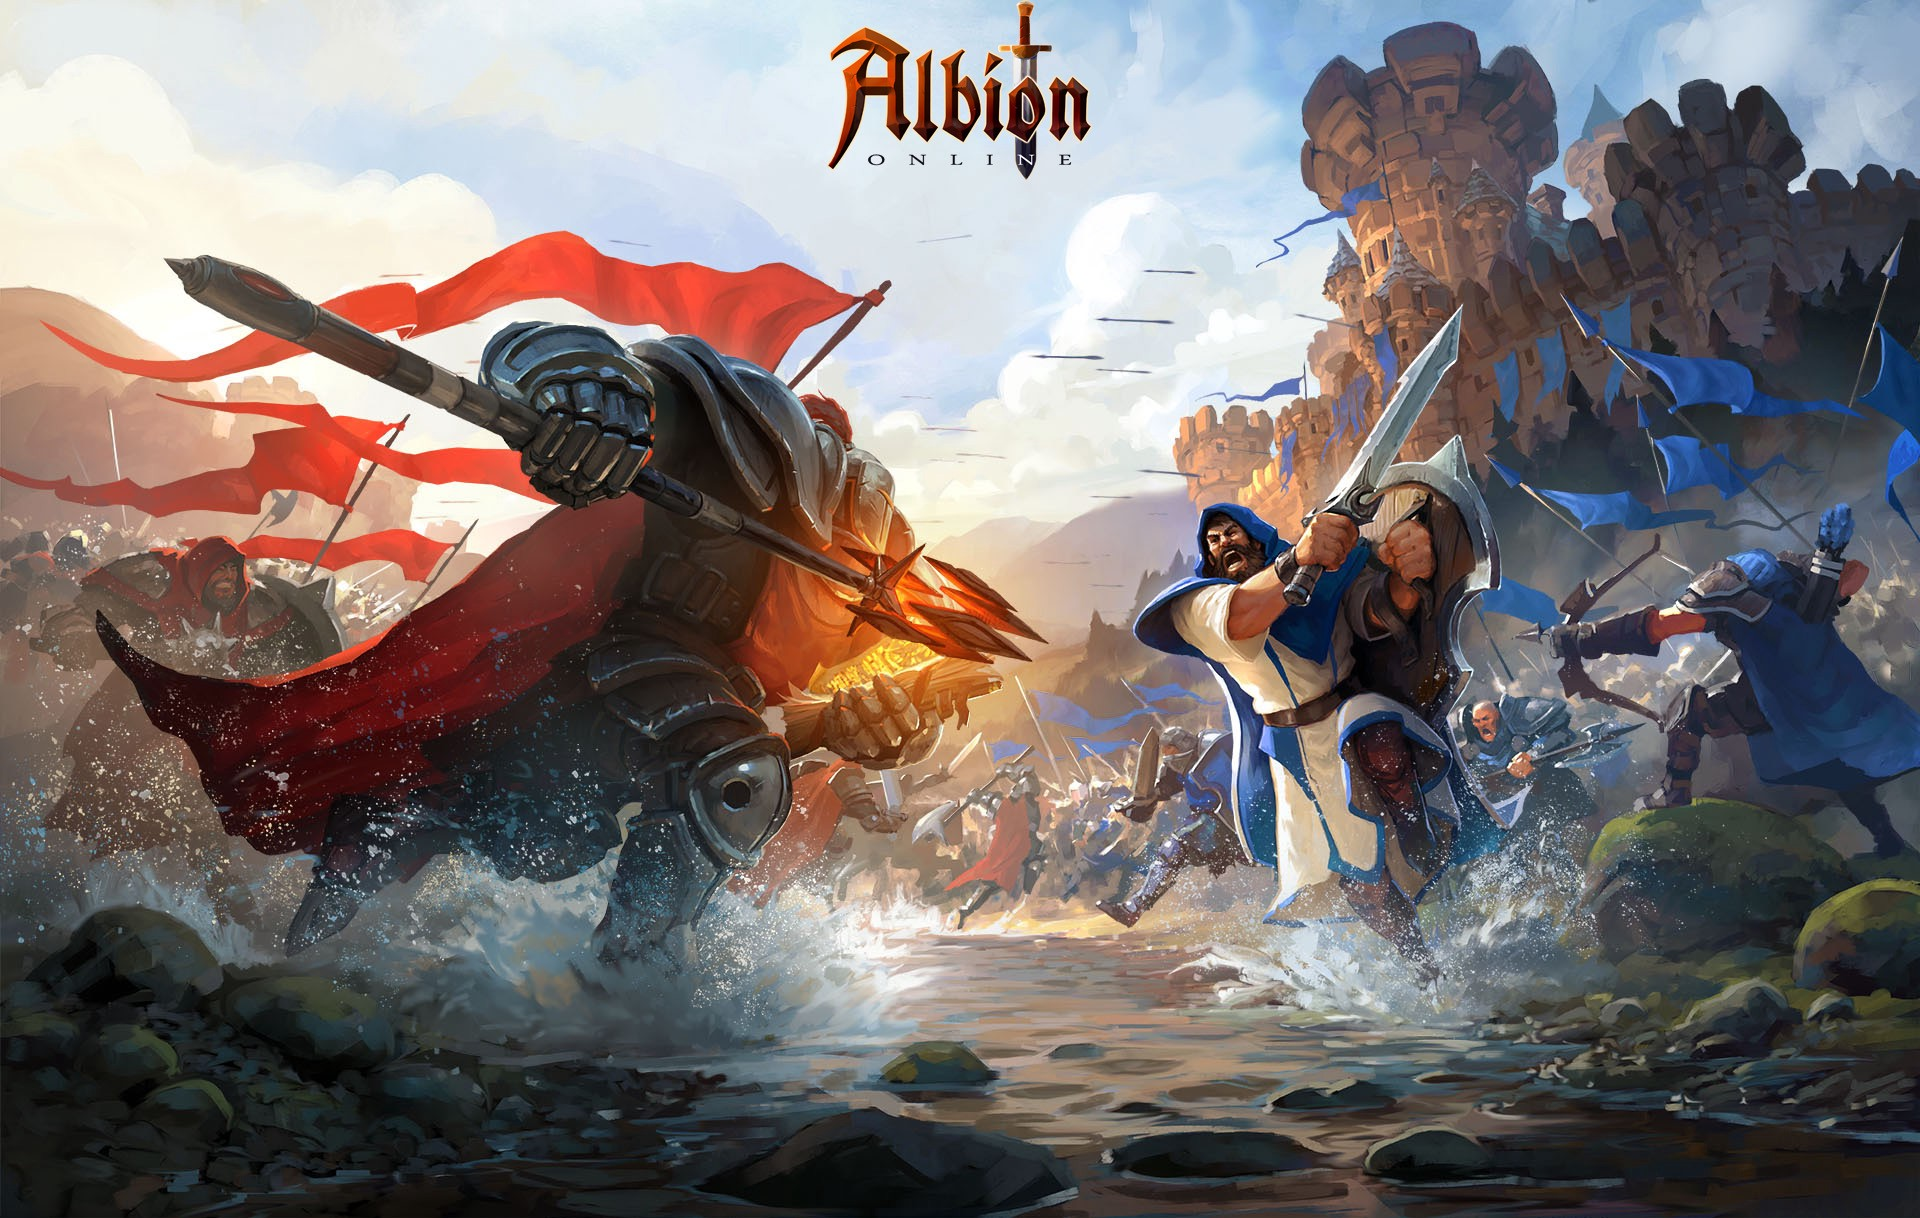 Albion Online: A Beautiful Game Stuck In Development Hell